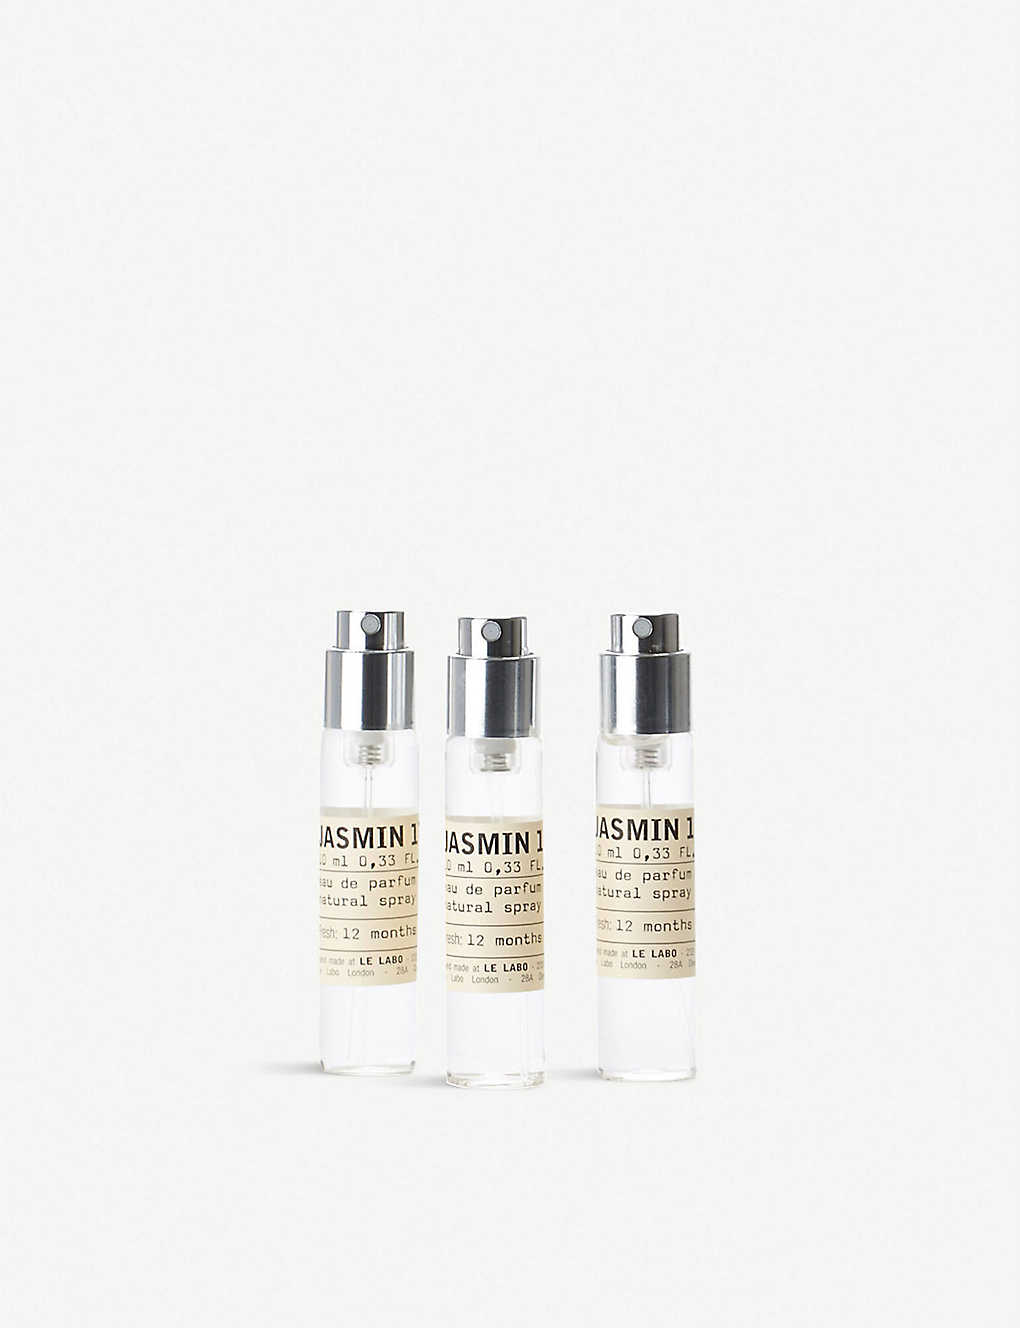 LE LABO: Jasmin 17 eau de parfum travel refill set 3 x 10ml